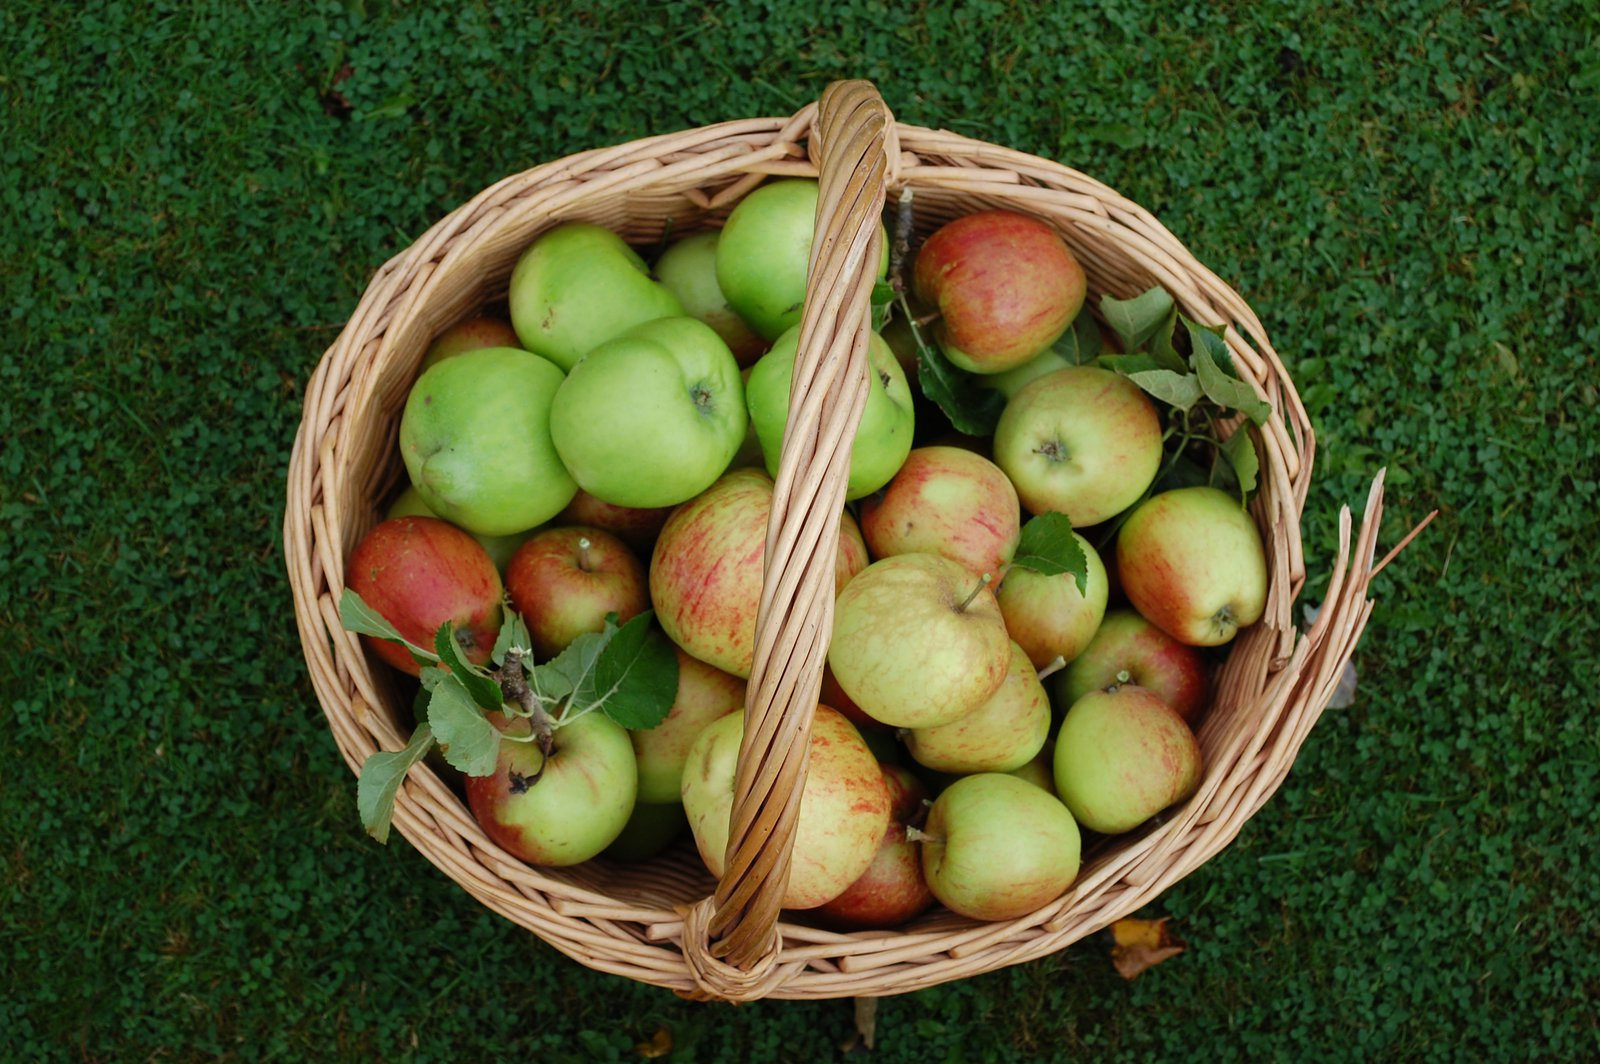 Apples Picked From the Garden